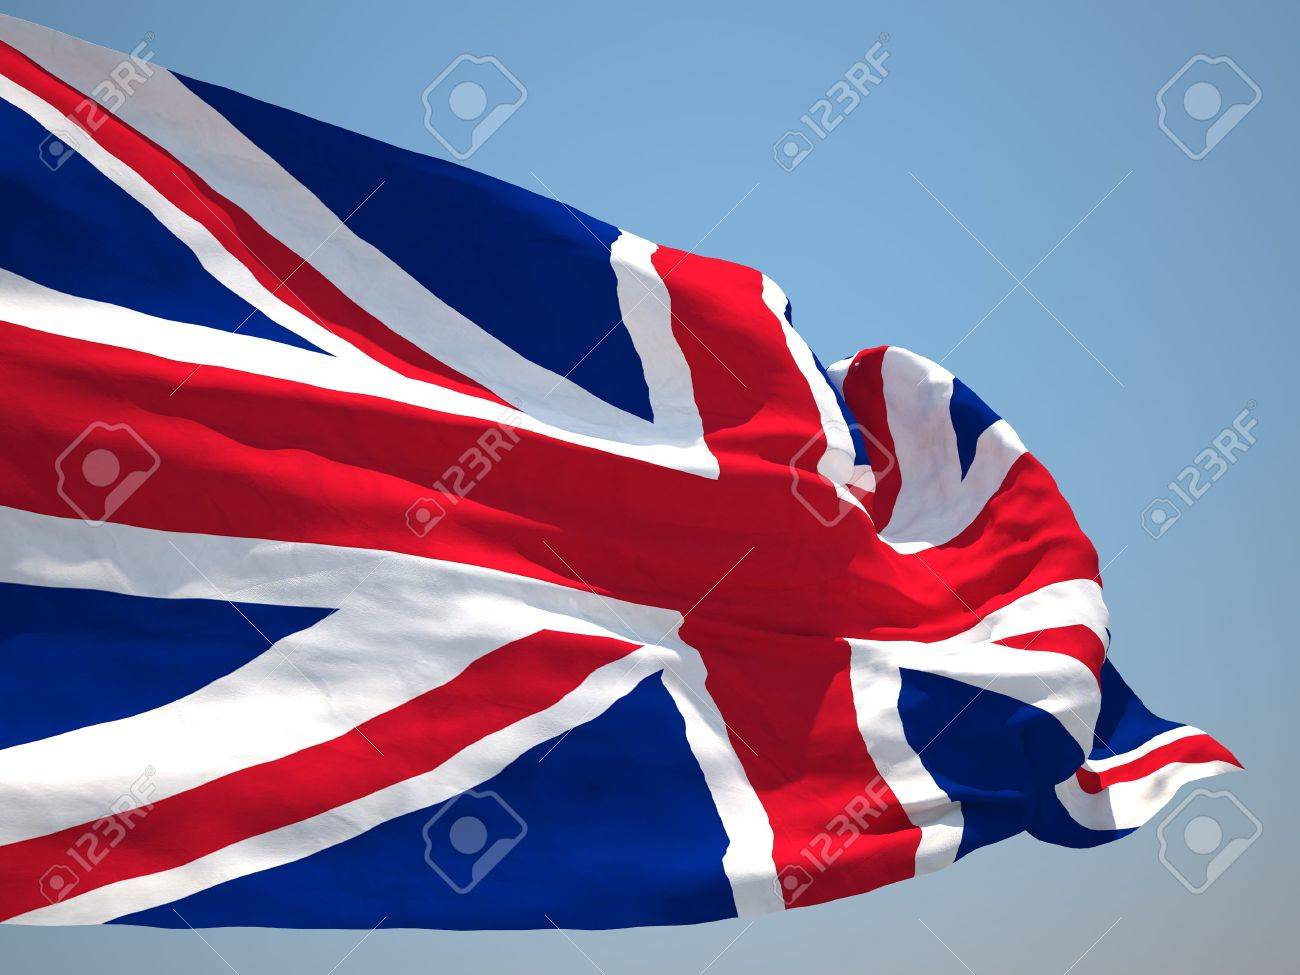 united kingdom hd flag england stock photo, picture and royalty free